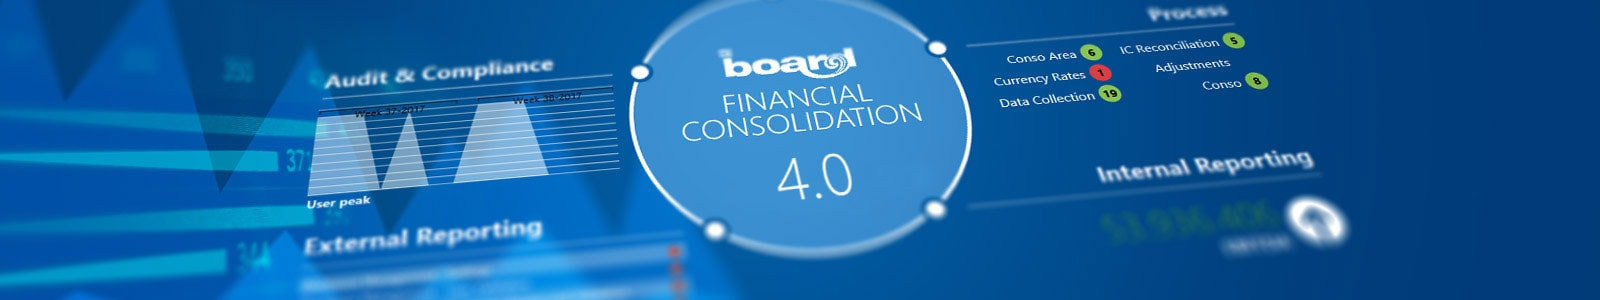 Webinar: Financial Consolidation 4.0 - März